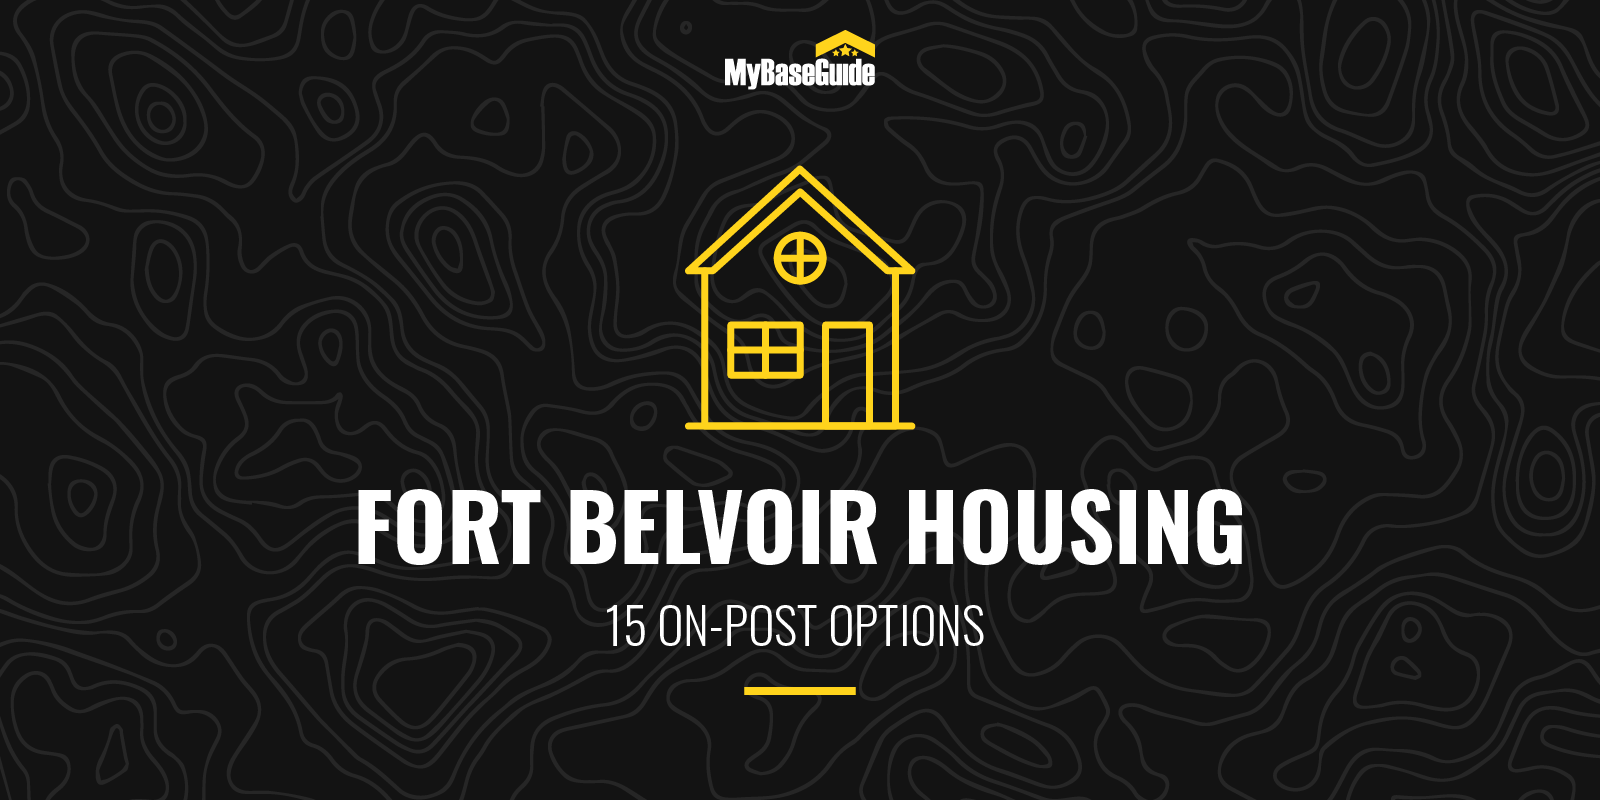 Fort Belvoir Housing: 15 On Post Options